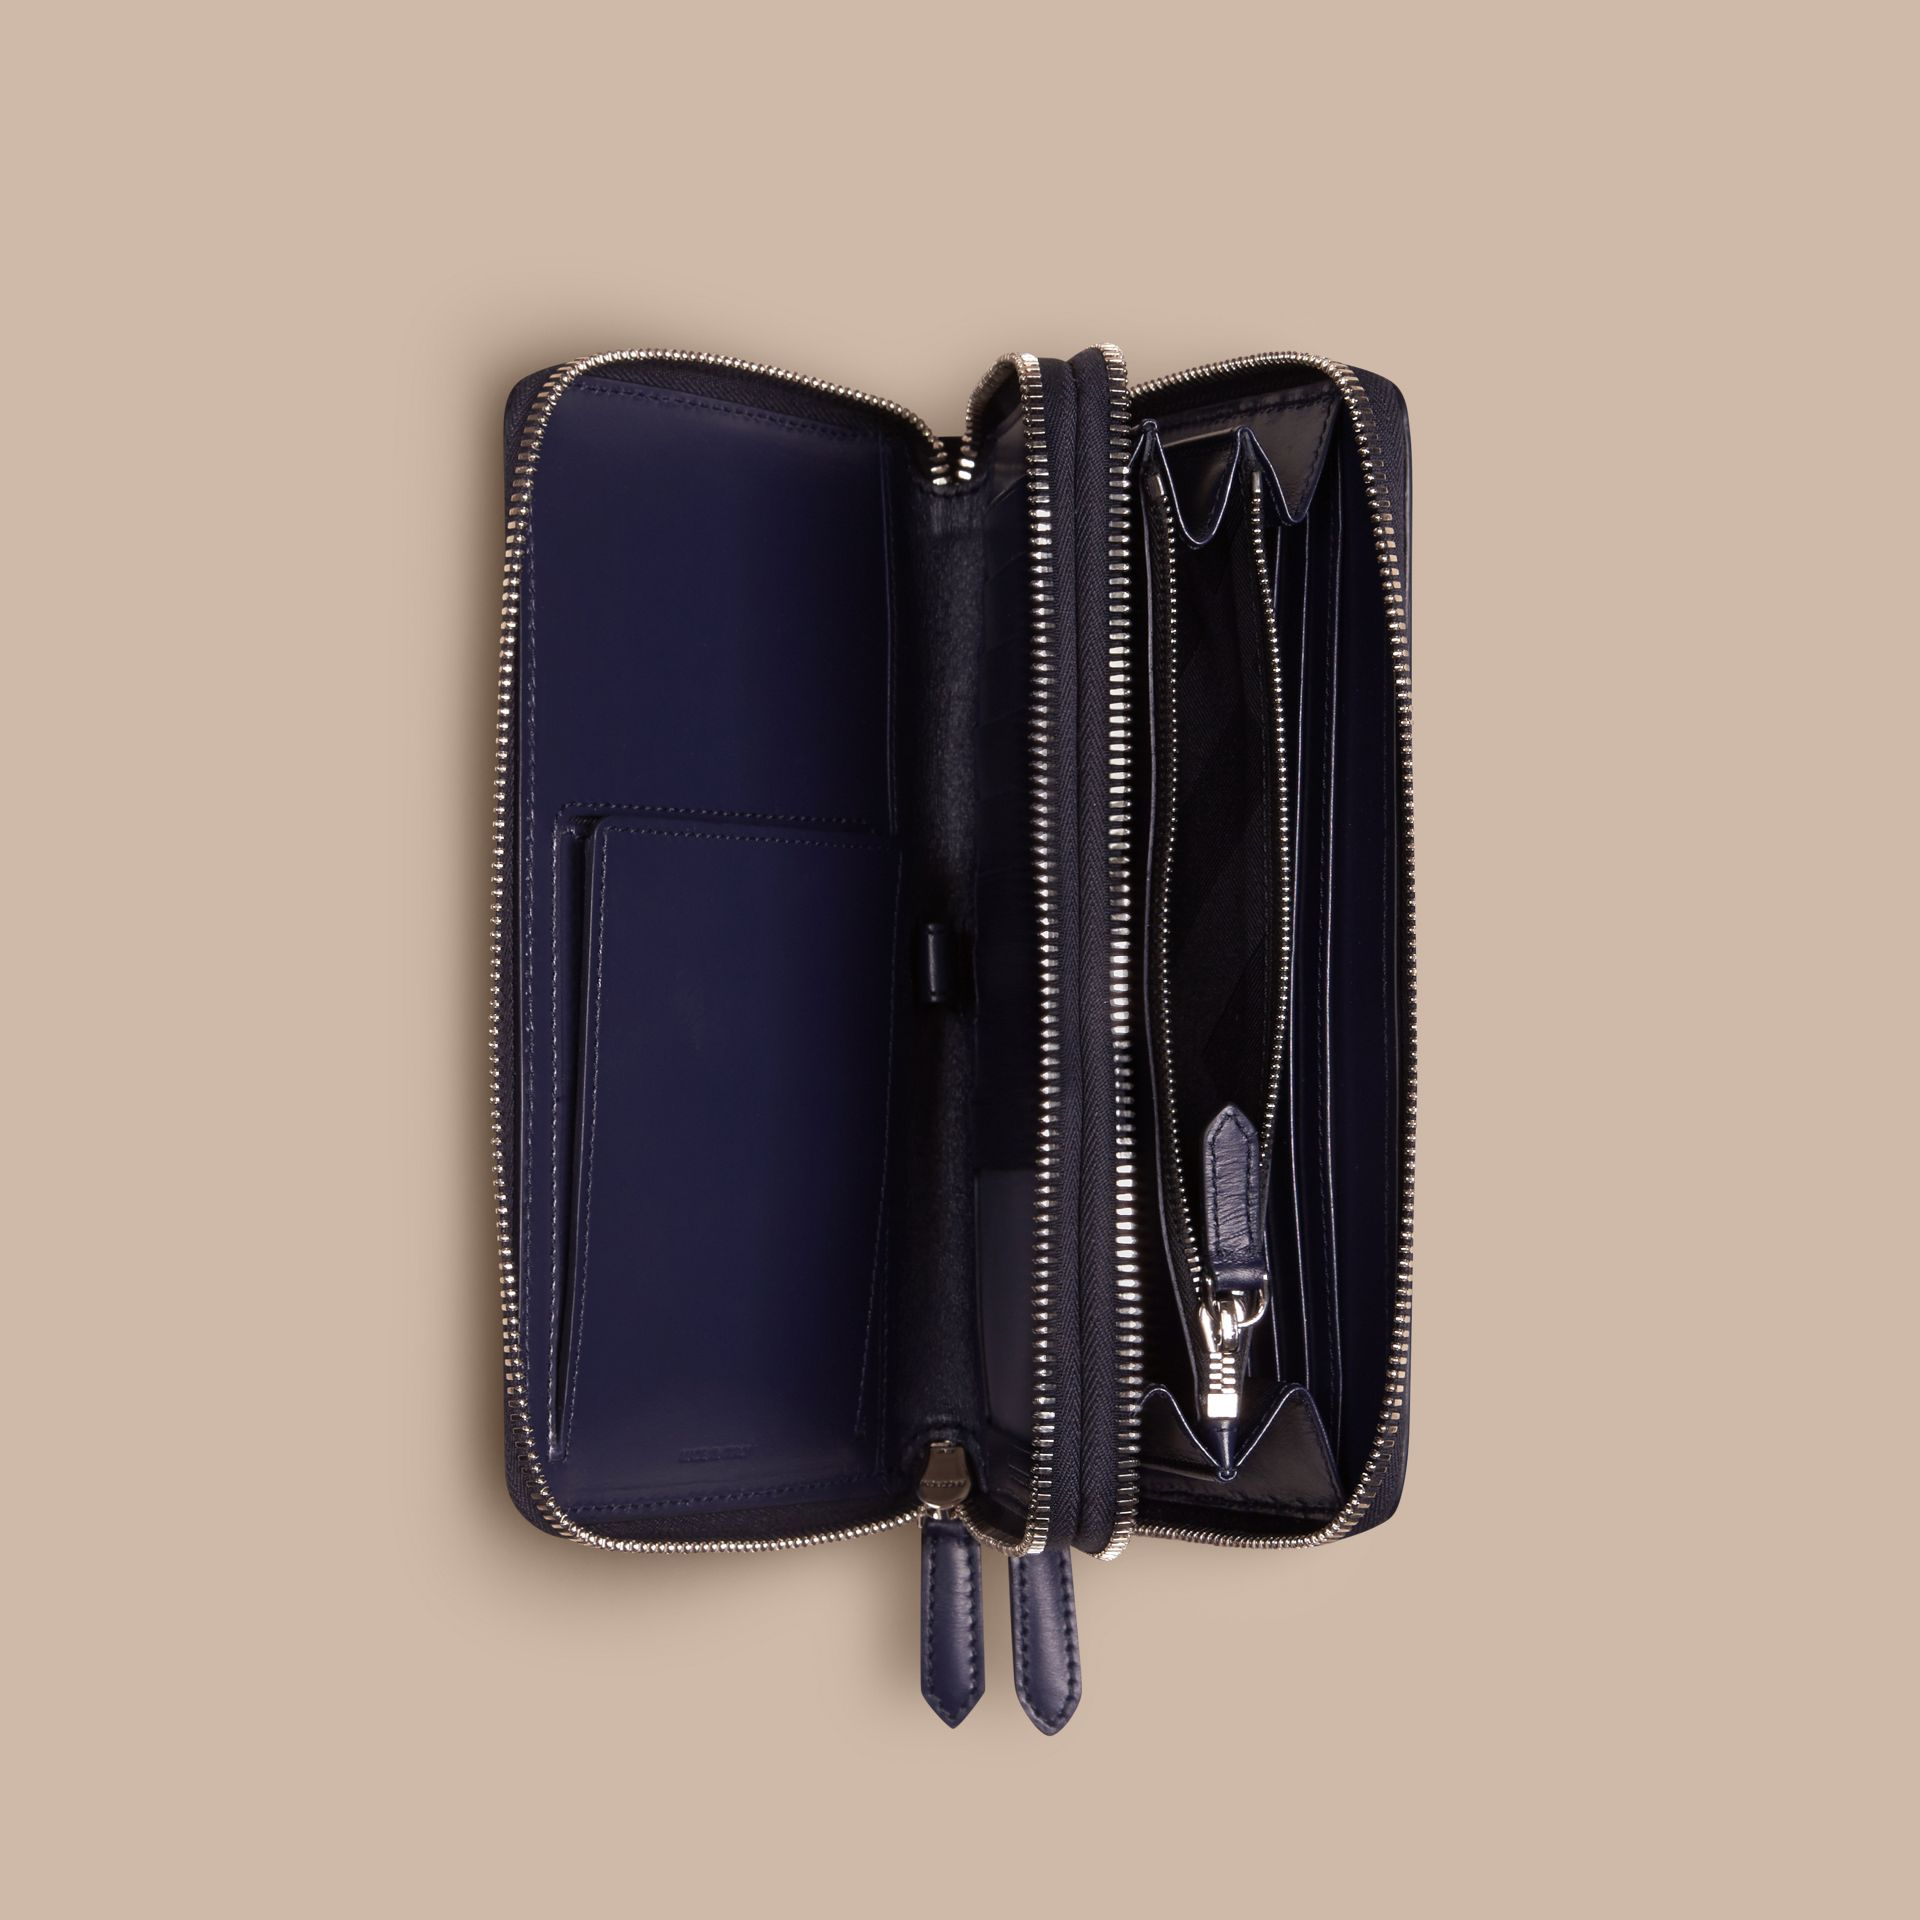 London Leather Travel Wallet in Dark Navy - Men | Burberry Singapore - gallery image 5